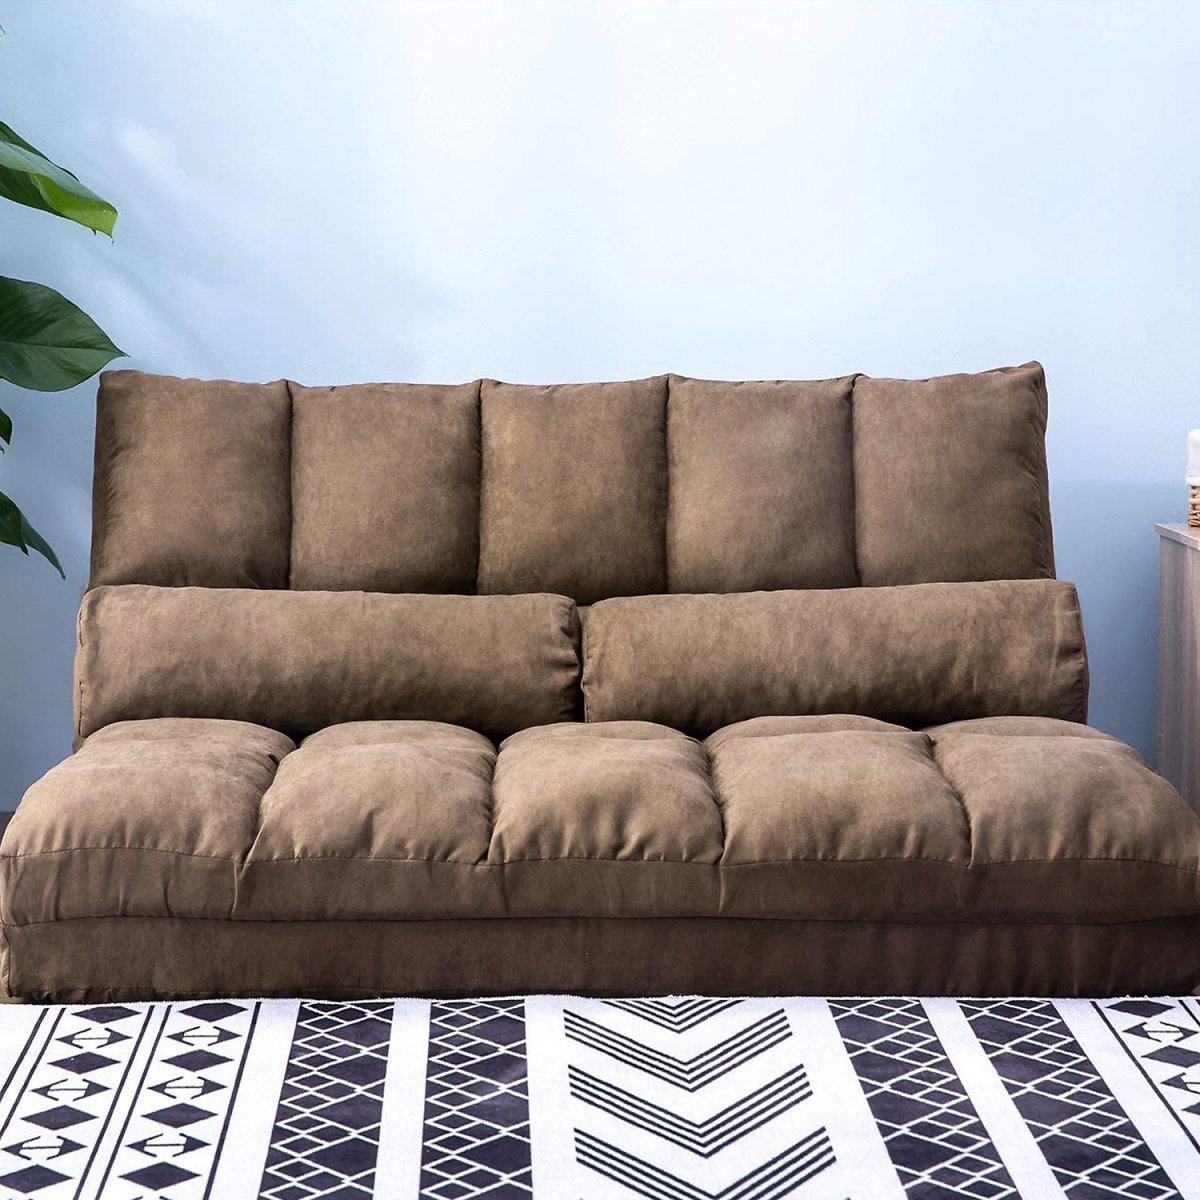 Floor Sofa Bed, Folding Futon Chaise Lounge Sofa Gaming Chair Floor Couch W/2 Pillows, Adjustable Floor Sofa and Couch, Sleeper